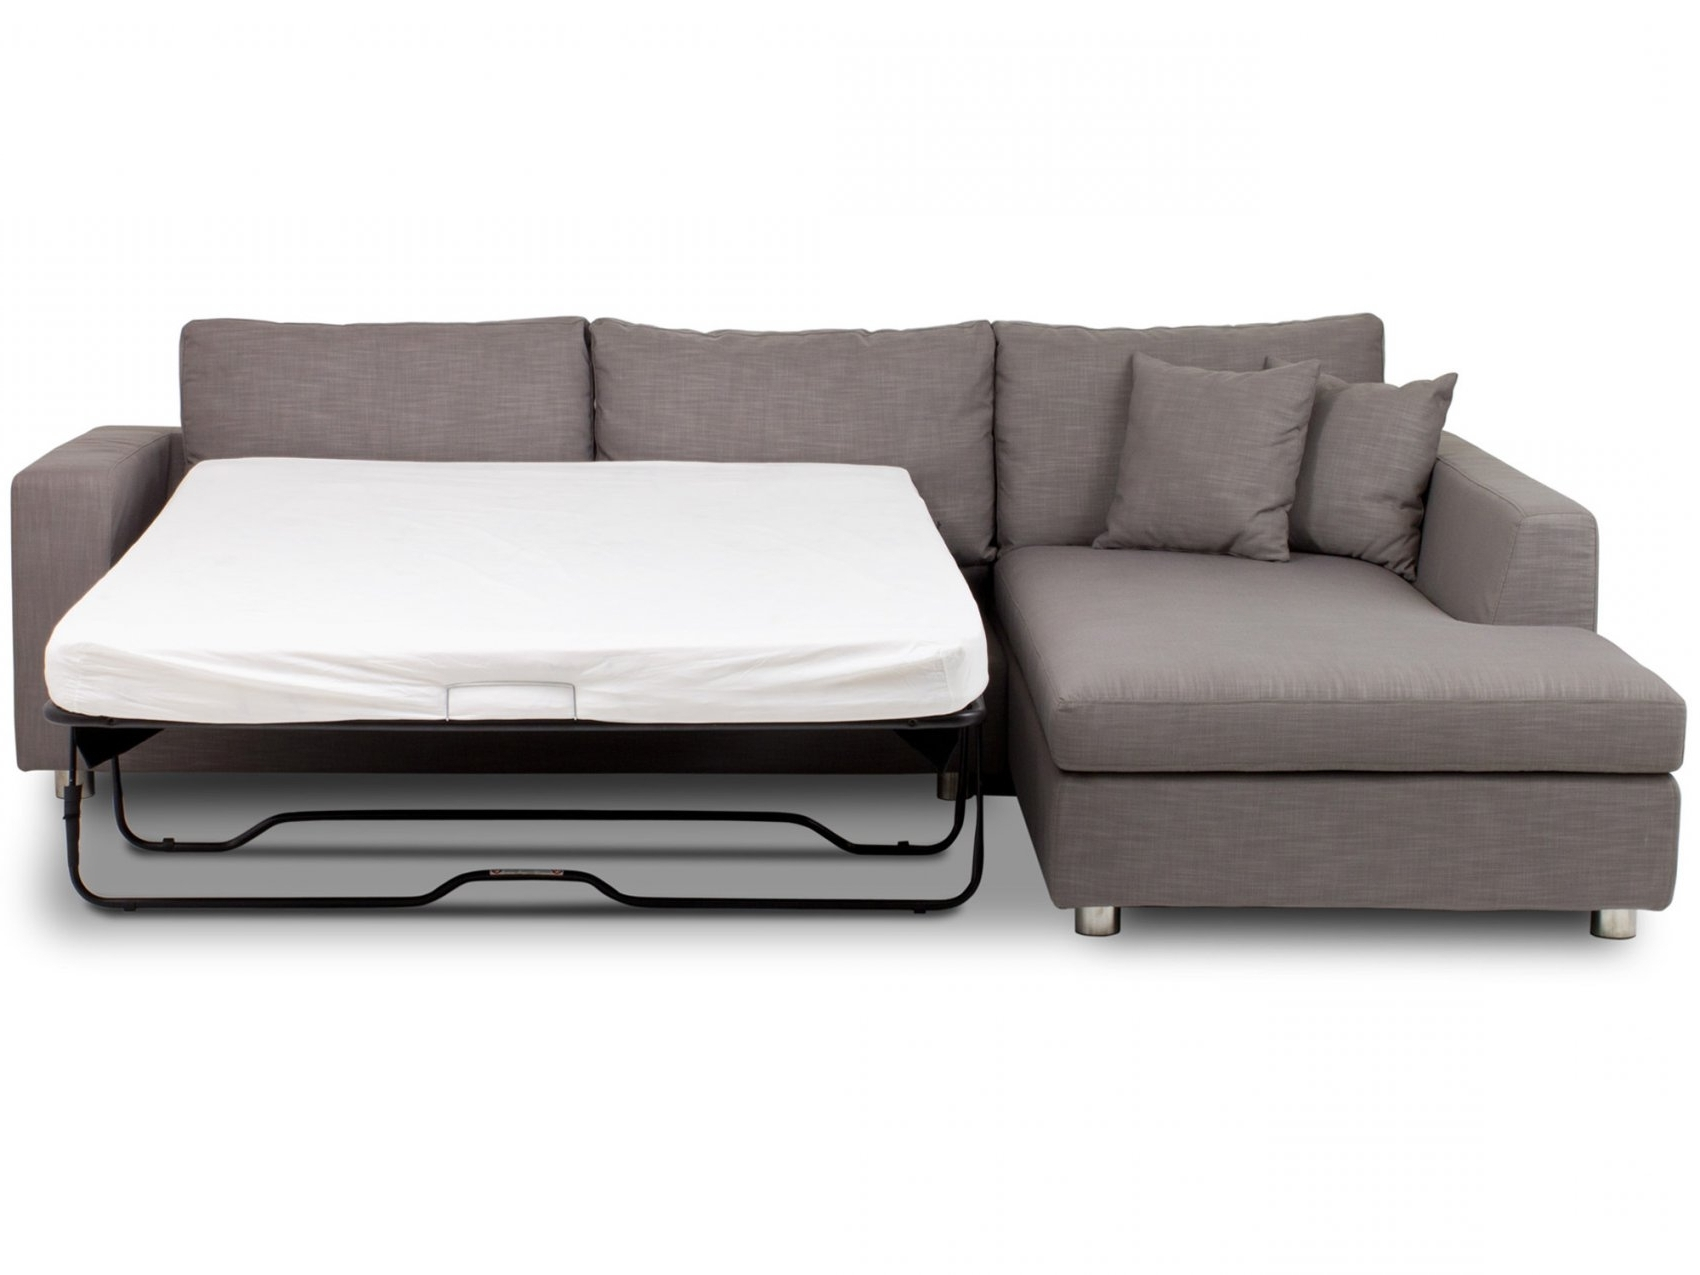 Recent Vivacious Chaise Sofa Bed With Softly Bed Foam For For Chaise Throughout Sleeper Chaise Lounges (View 12 of 15)